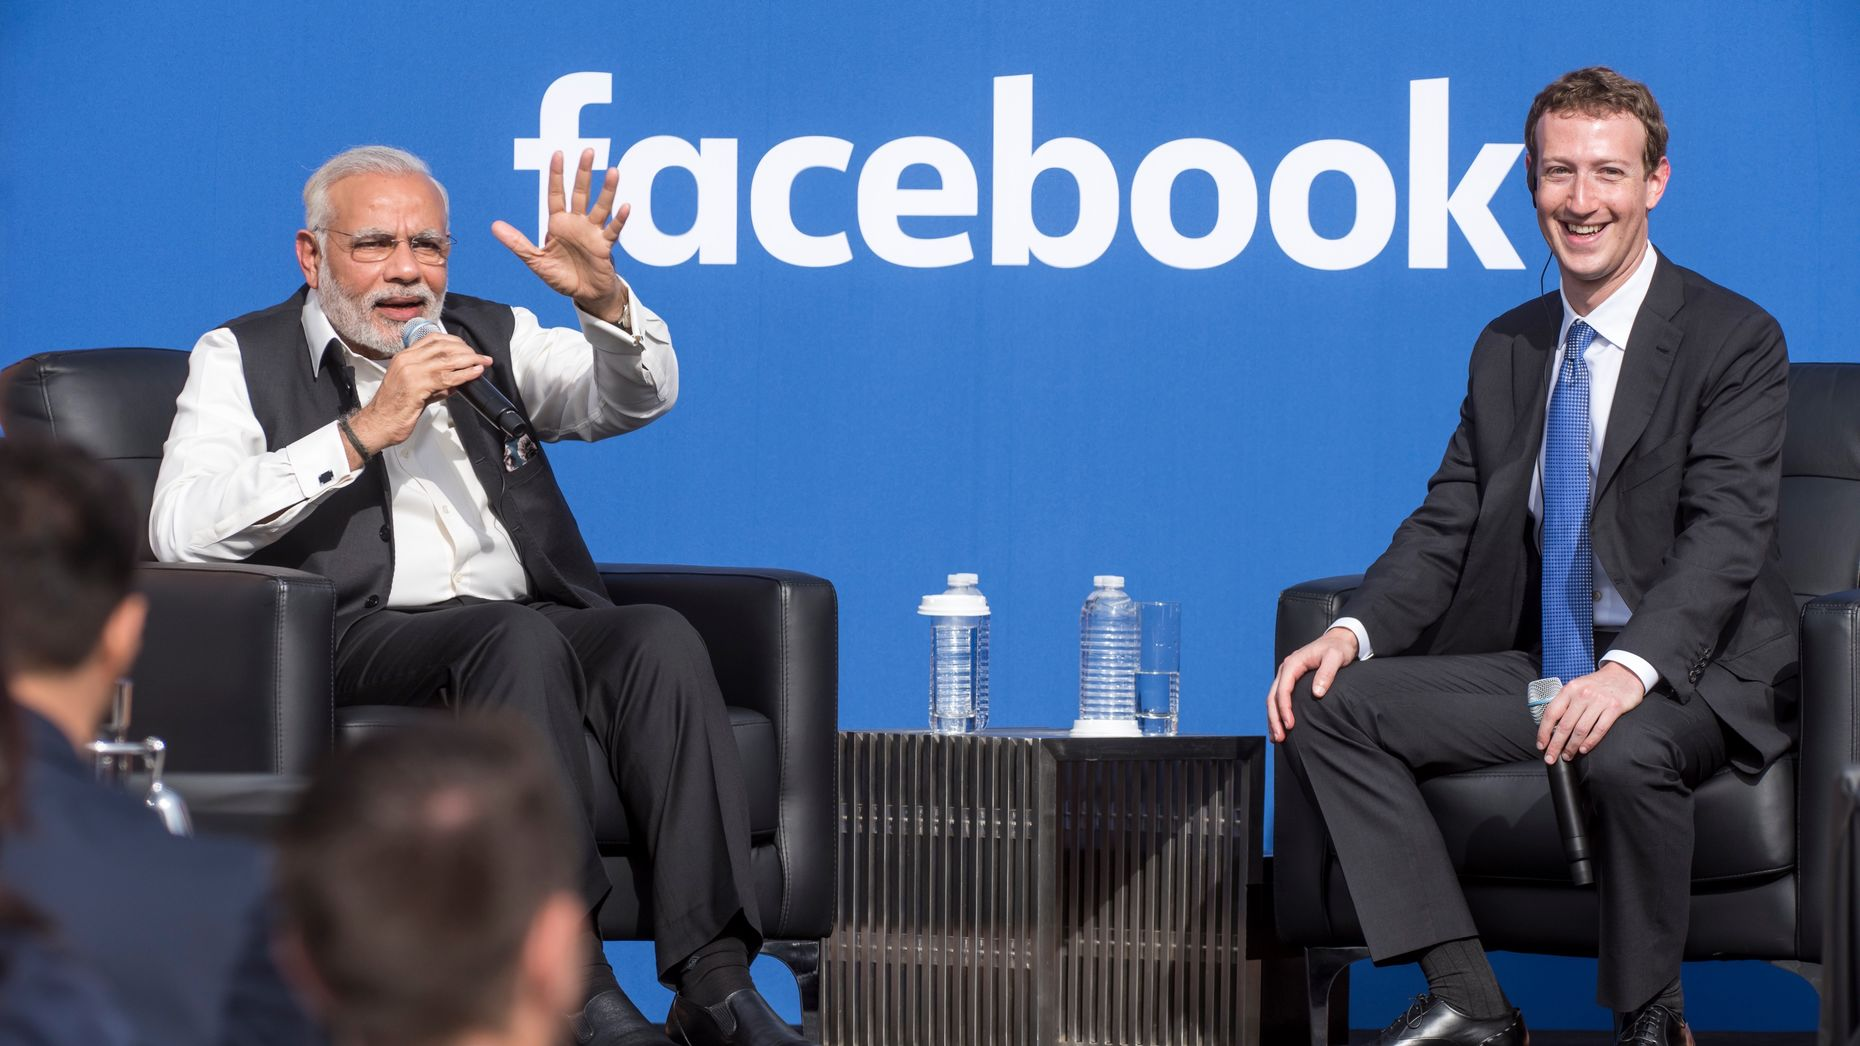 Indian Prime Minister Narendra Modi, left, with Mark Zuckerberg. Photo by Bloomberg.